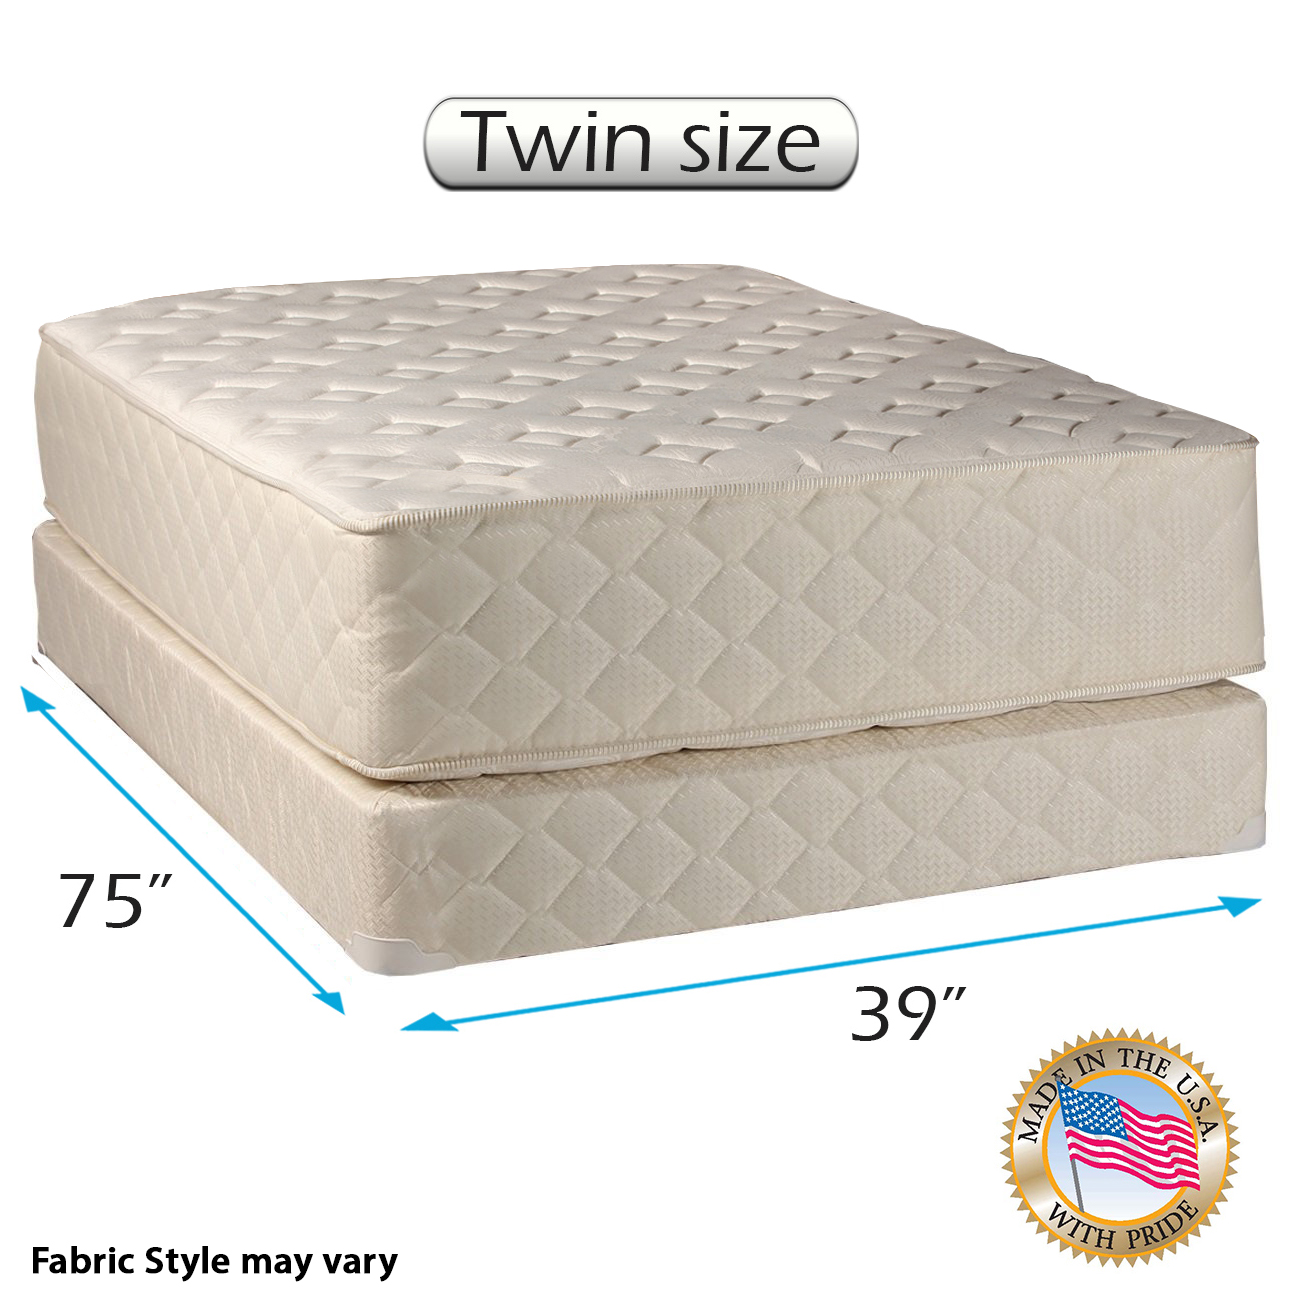 "Highlight Luxury Firm Twin Size (39""x75""x14"") Mattress & Box Spring Set - Fully Assembled - Spinal Back Support, Innerspring Coils, Premium edge guards, Longlasting Comfort - By Dream Solutions USA"